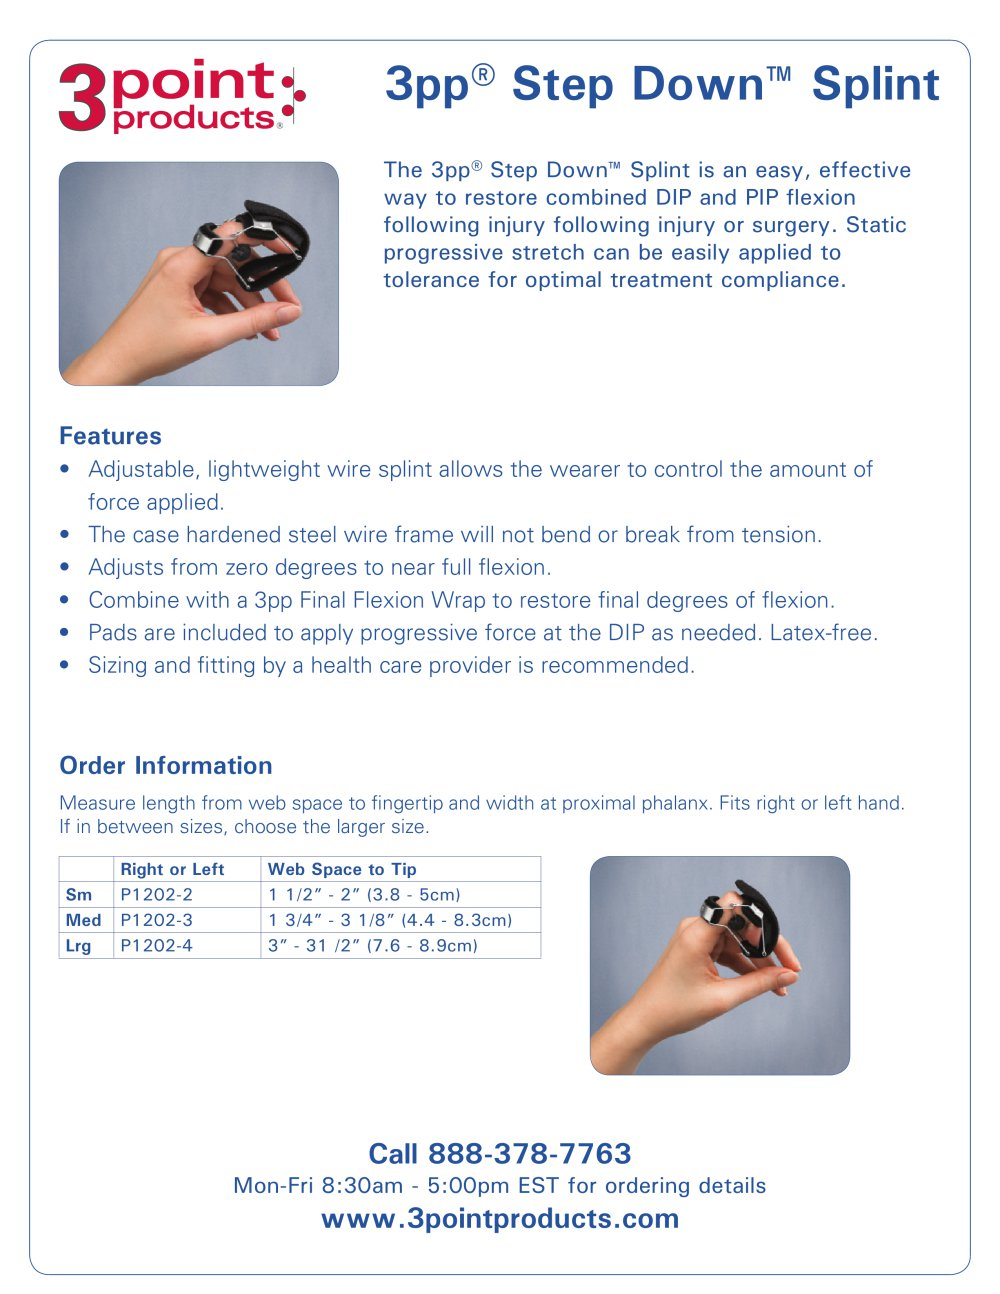 3pp® Step Down™ Splint - 1 / 1 Pages